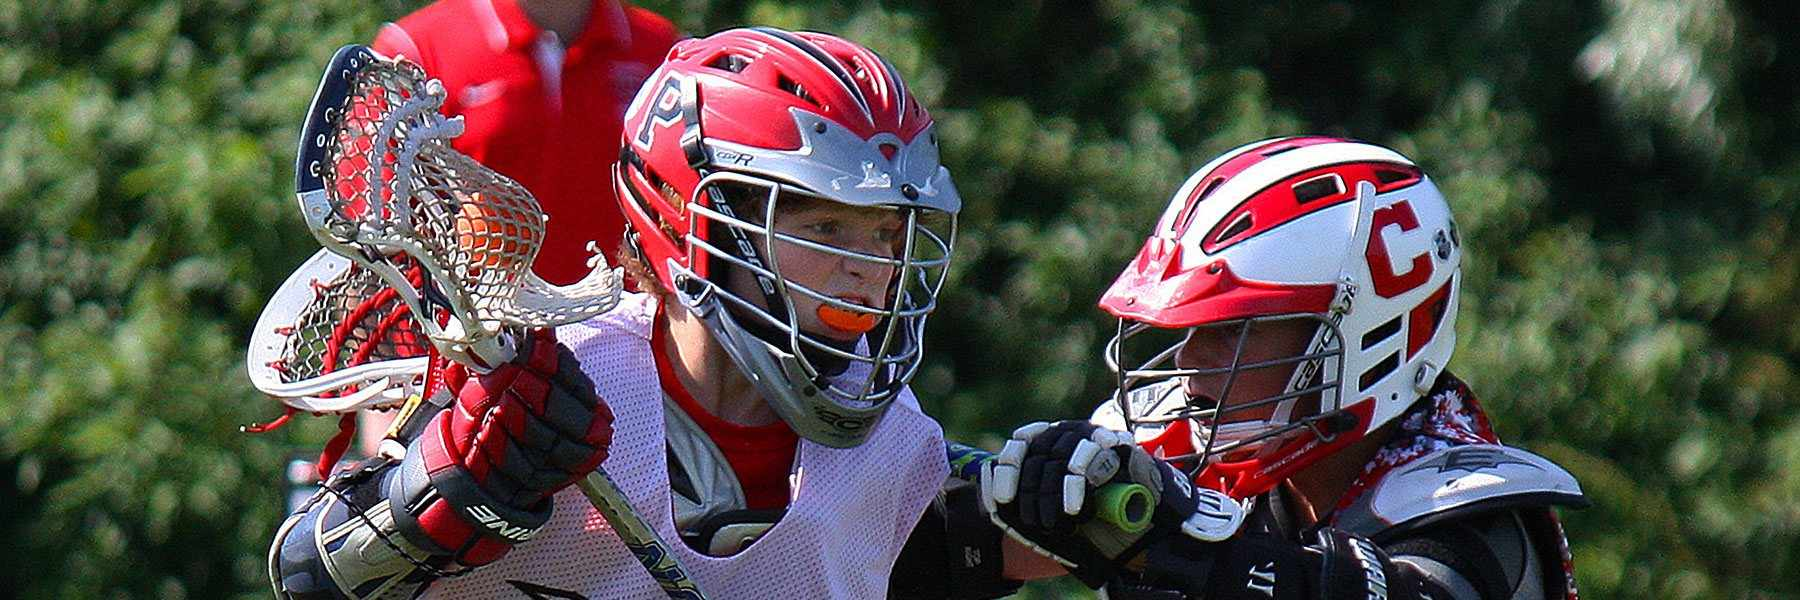 lacrosse club management software